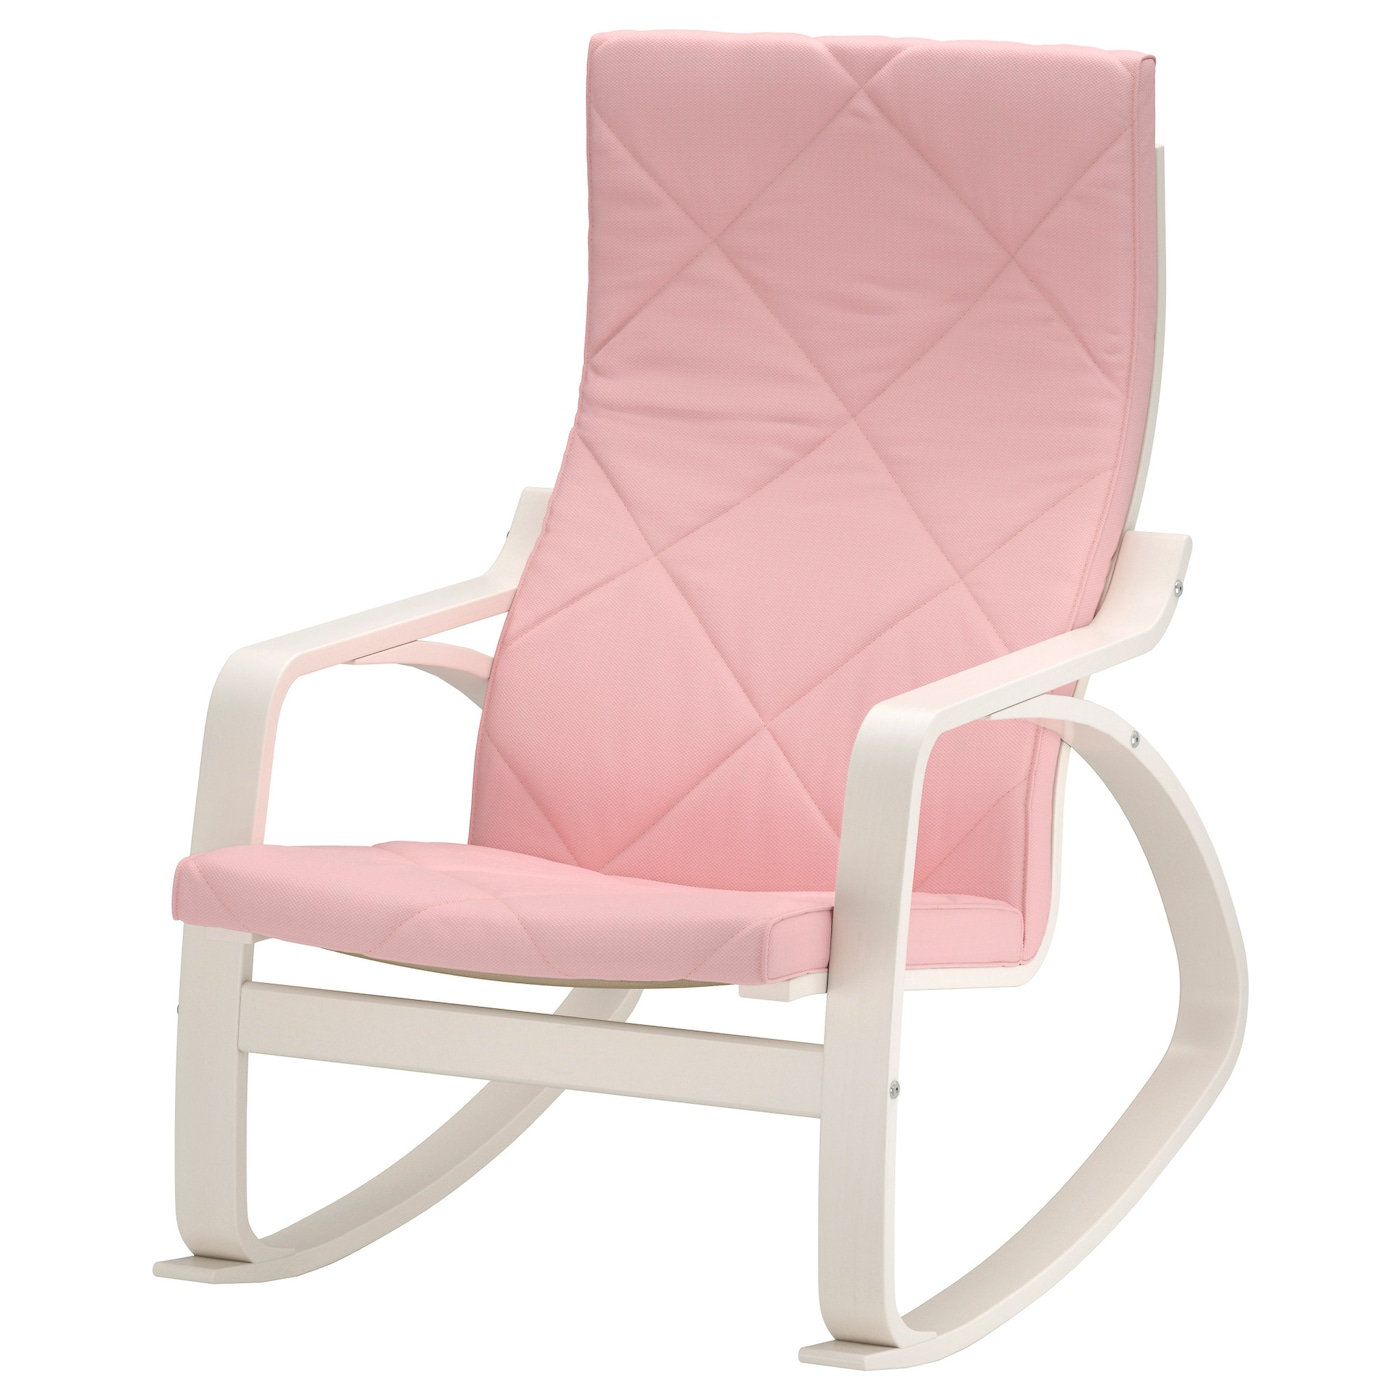 po ng rocking chair white gr sbo pink ikea. Black Bedroom Furniture Sets. Home Design Ideas